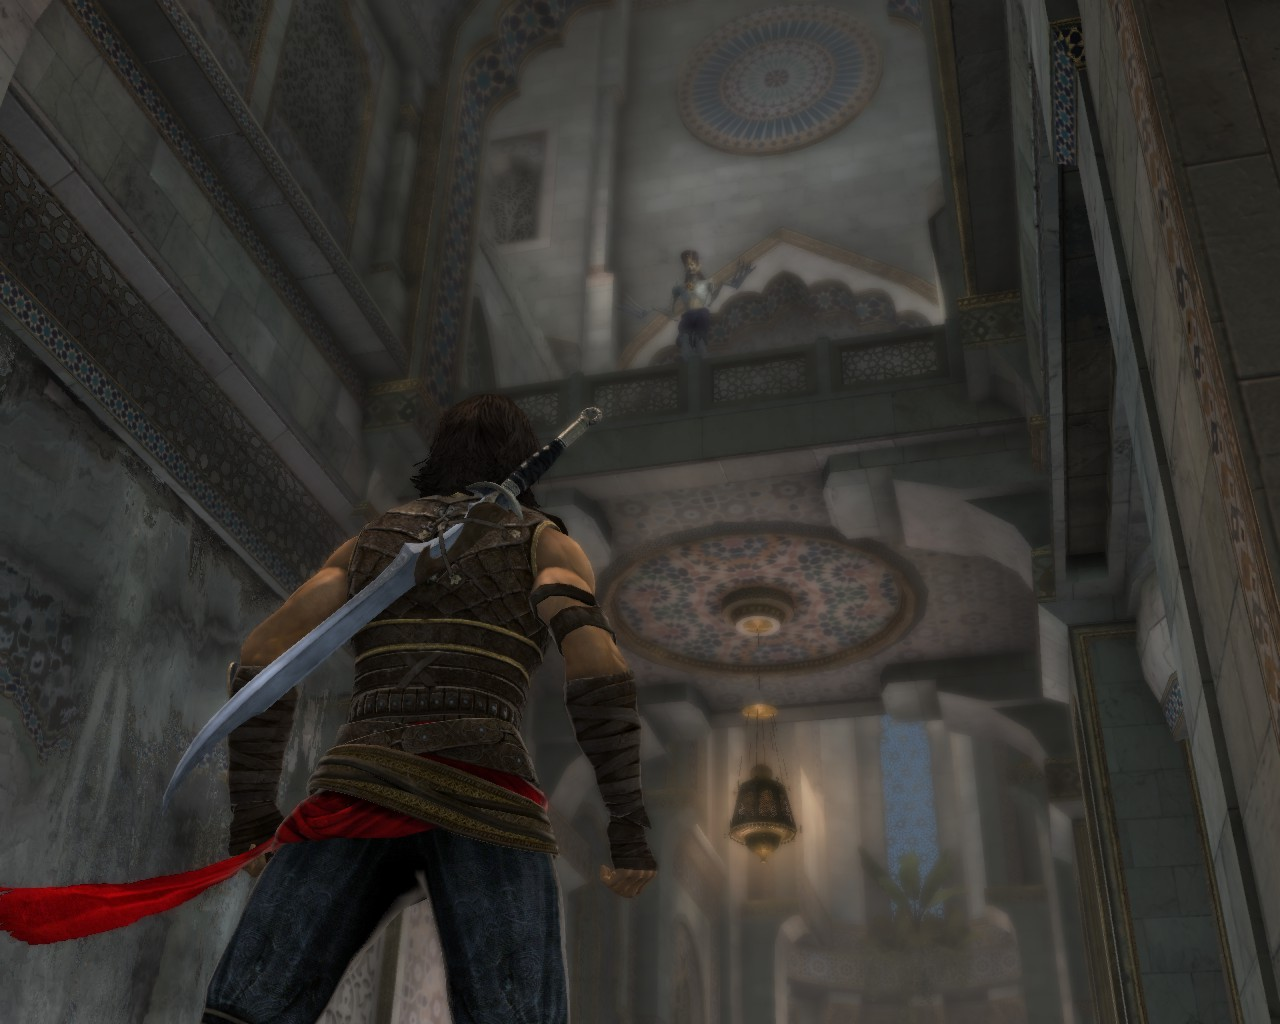 Prince of Persia 2014-06-03 22-35-20-43.jpg - Prince of Persia: The Forgotten Sands